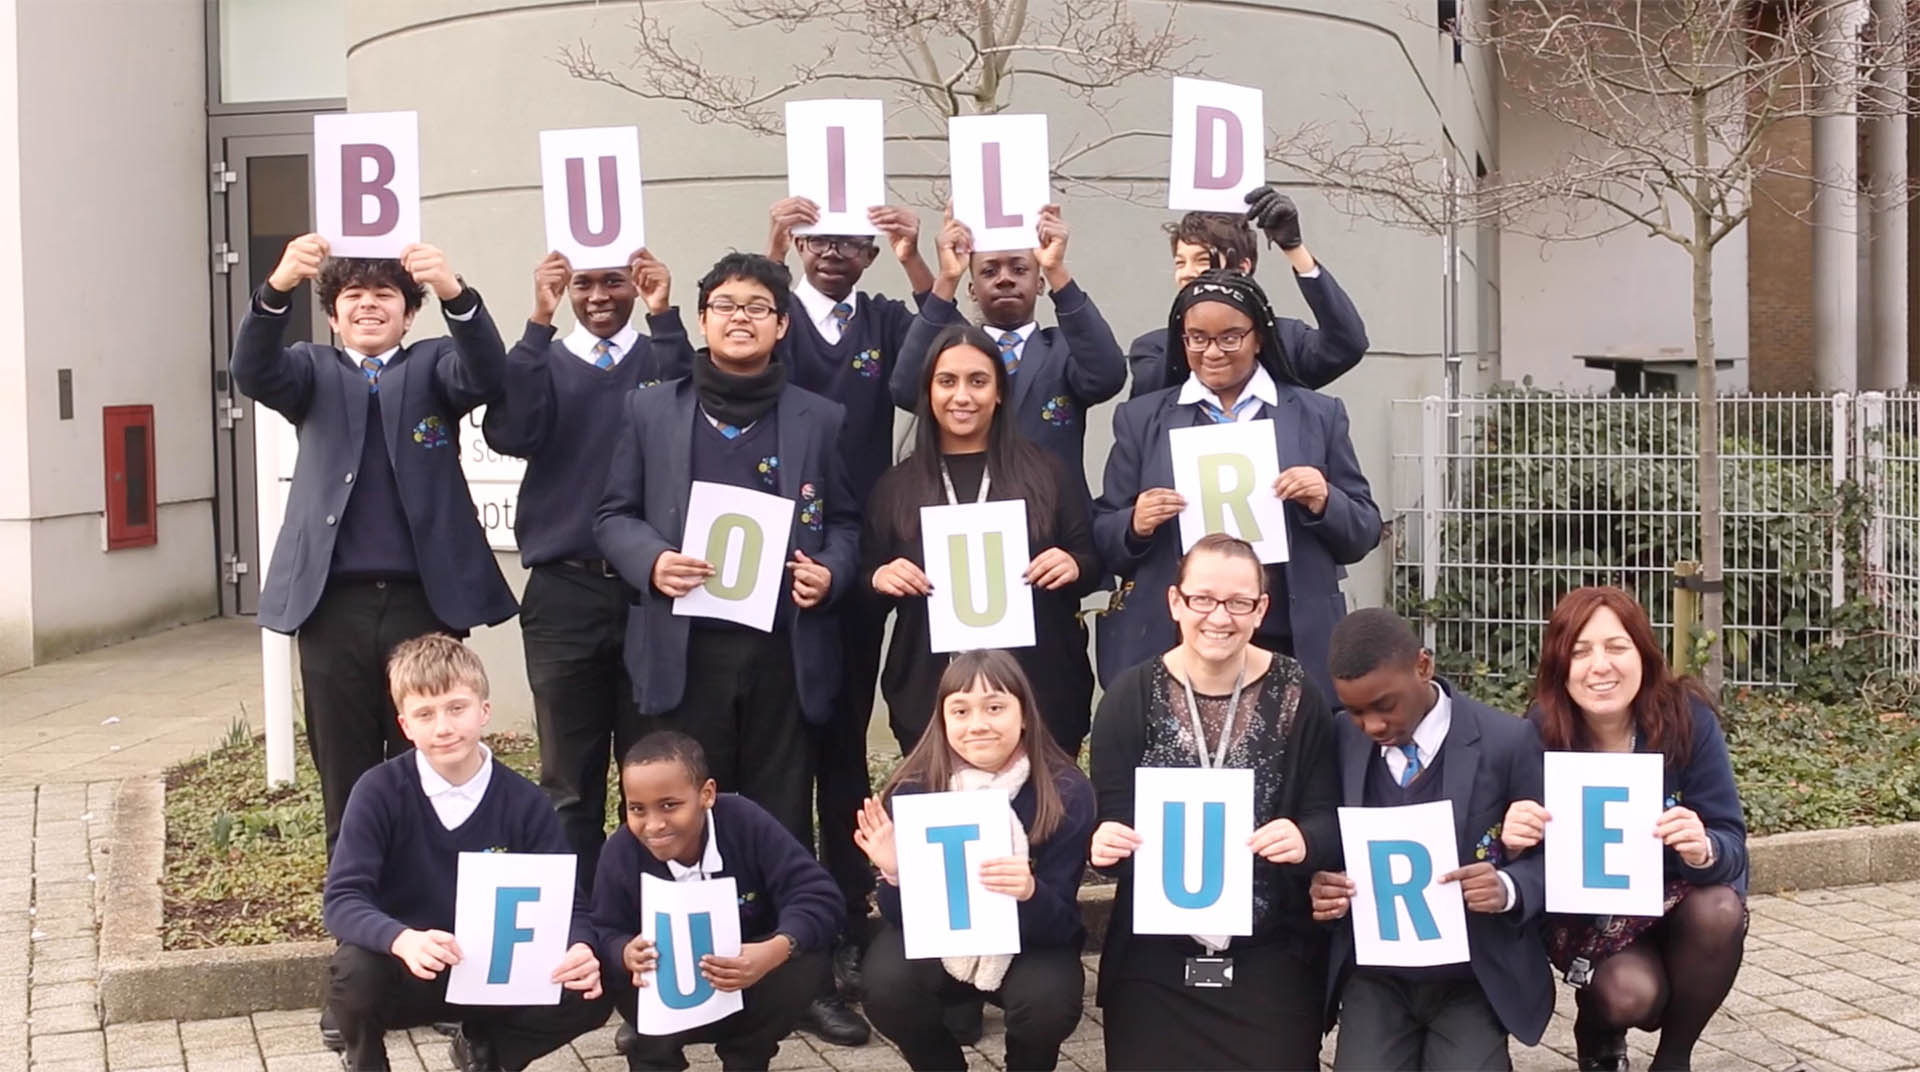 Video thumbnail. Children holding 'BUILD OUR FUTURE' sign